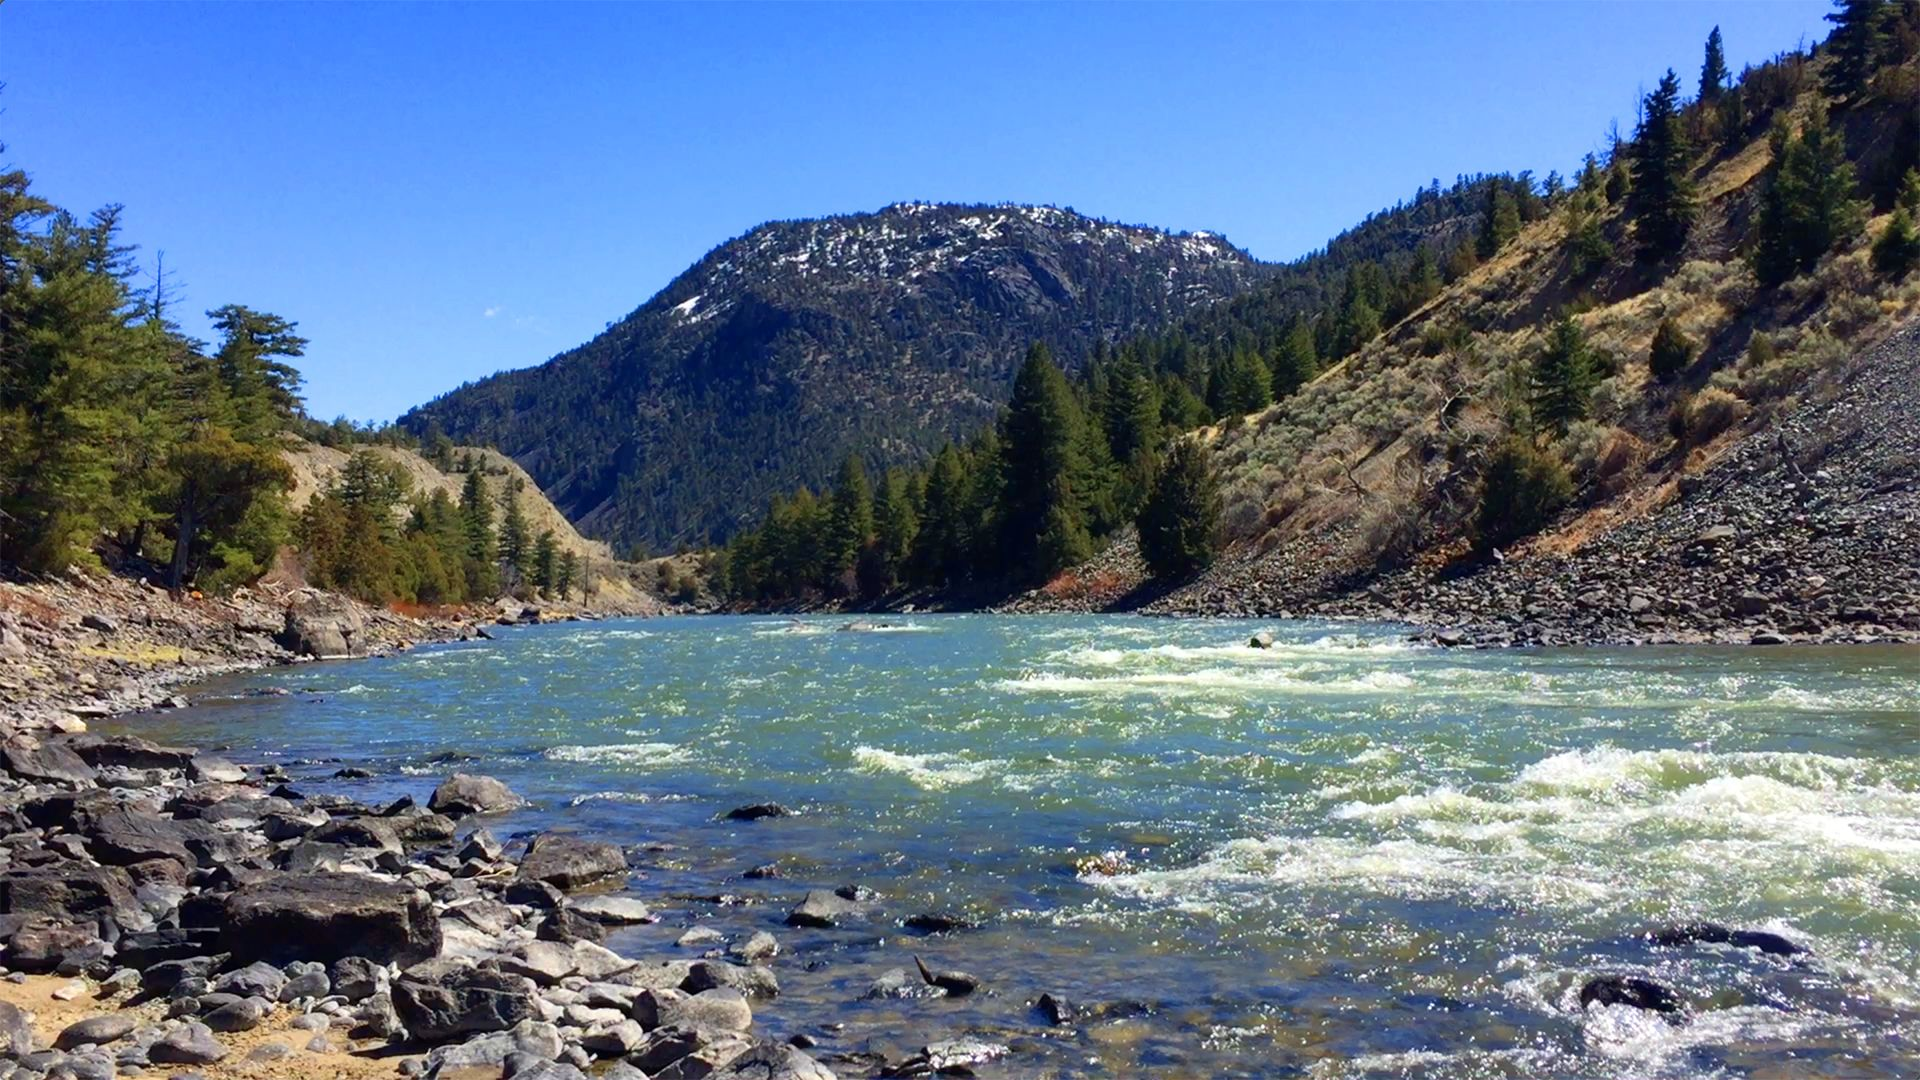 Video Fly Fishing The Yellowstone River In Yankee Jim Canyon Should Definitely Be On This Summer S To Do And See Yellowstone River Dream Water Yellowstone